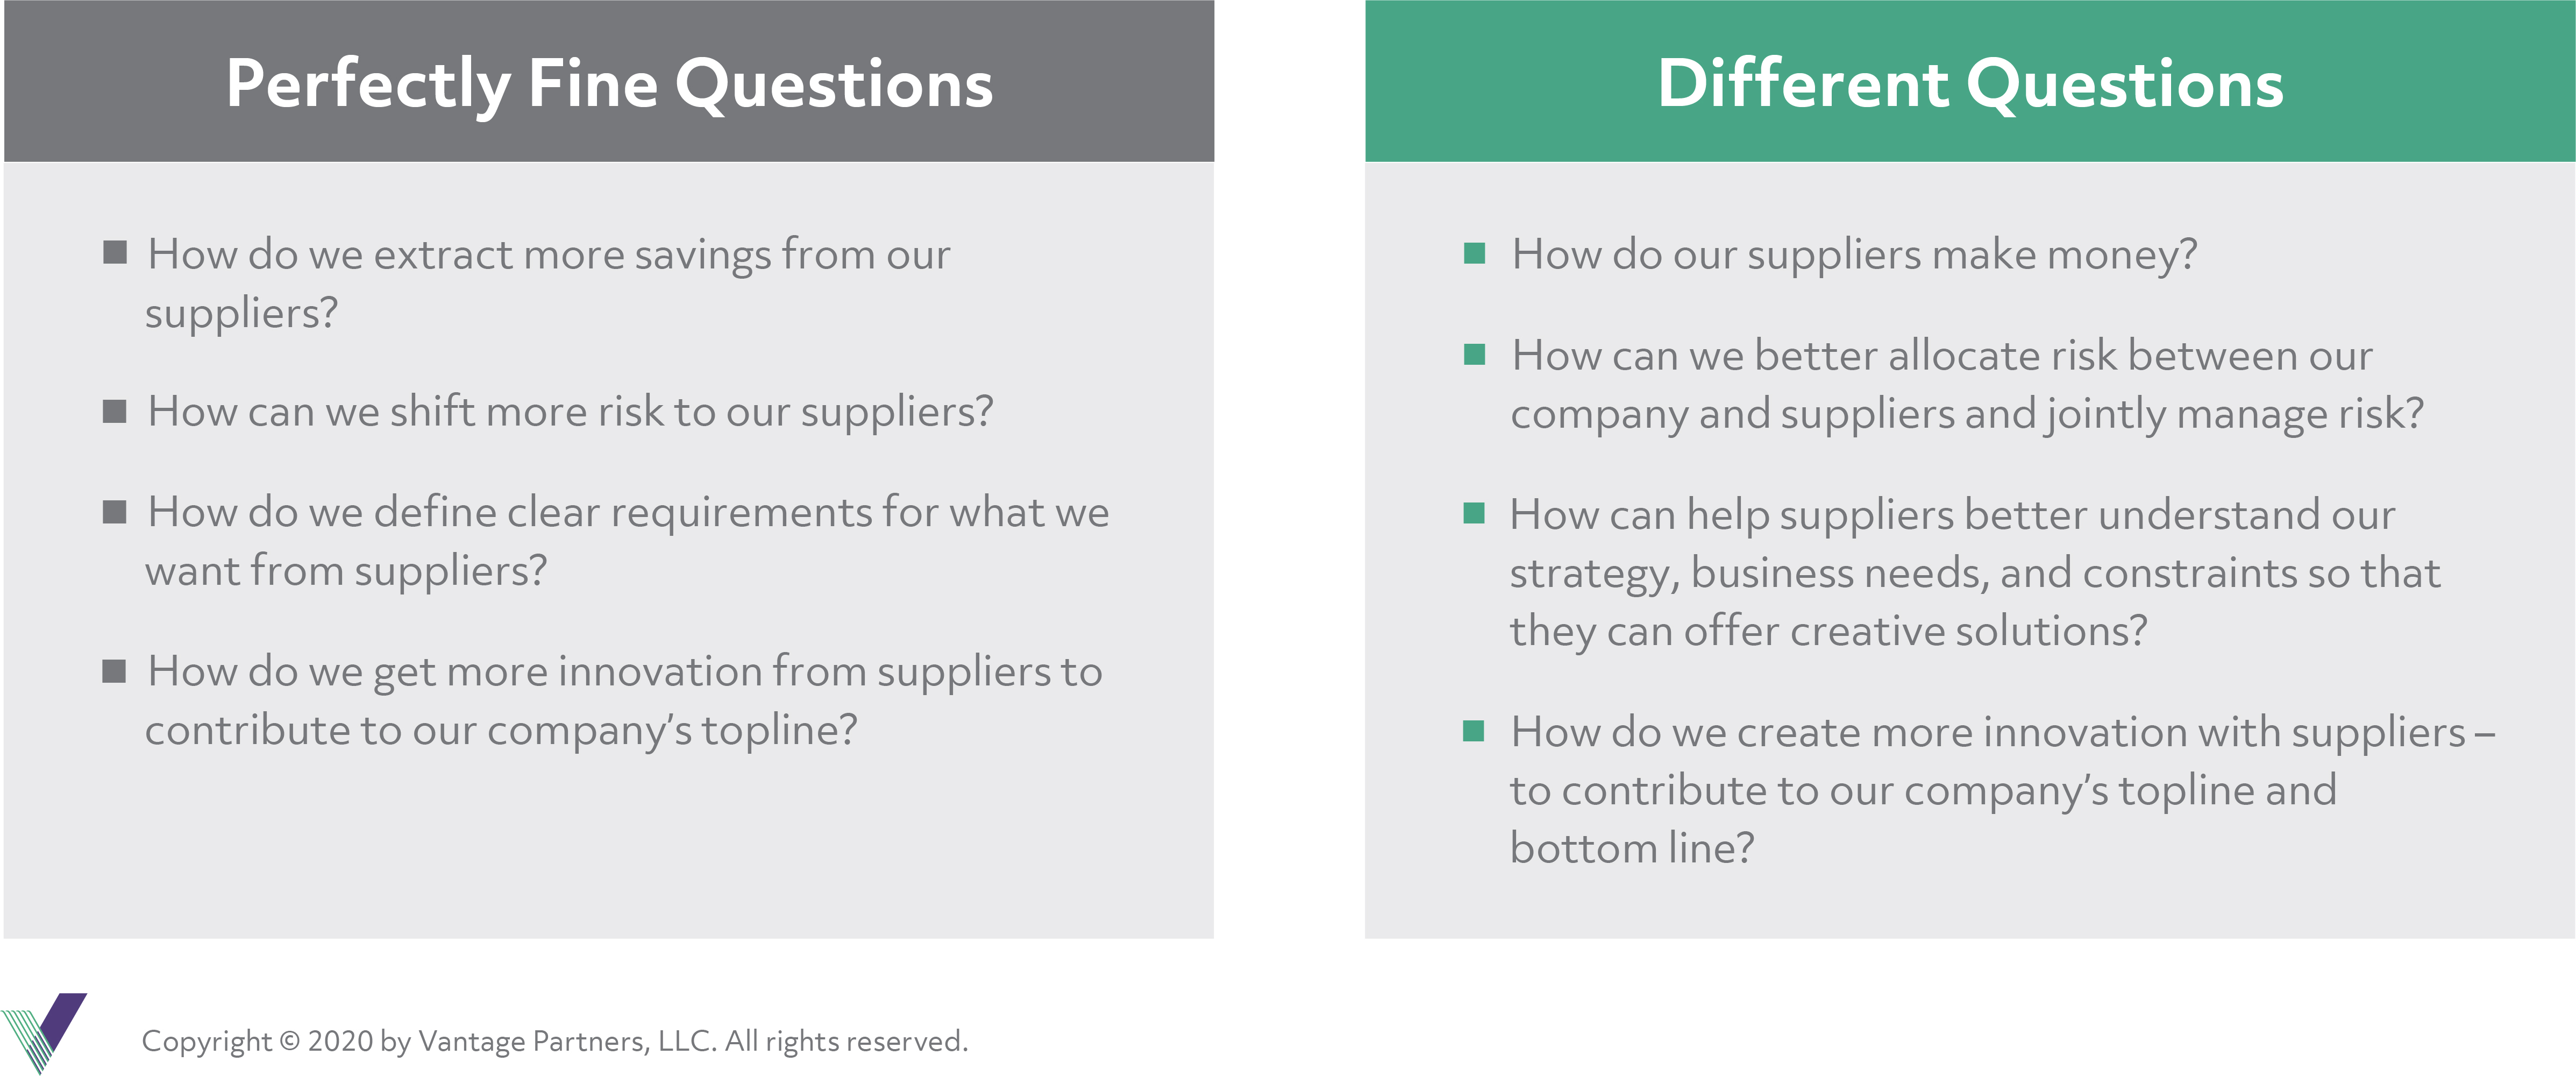 To get more value, we need to ask different questions